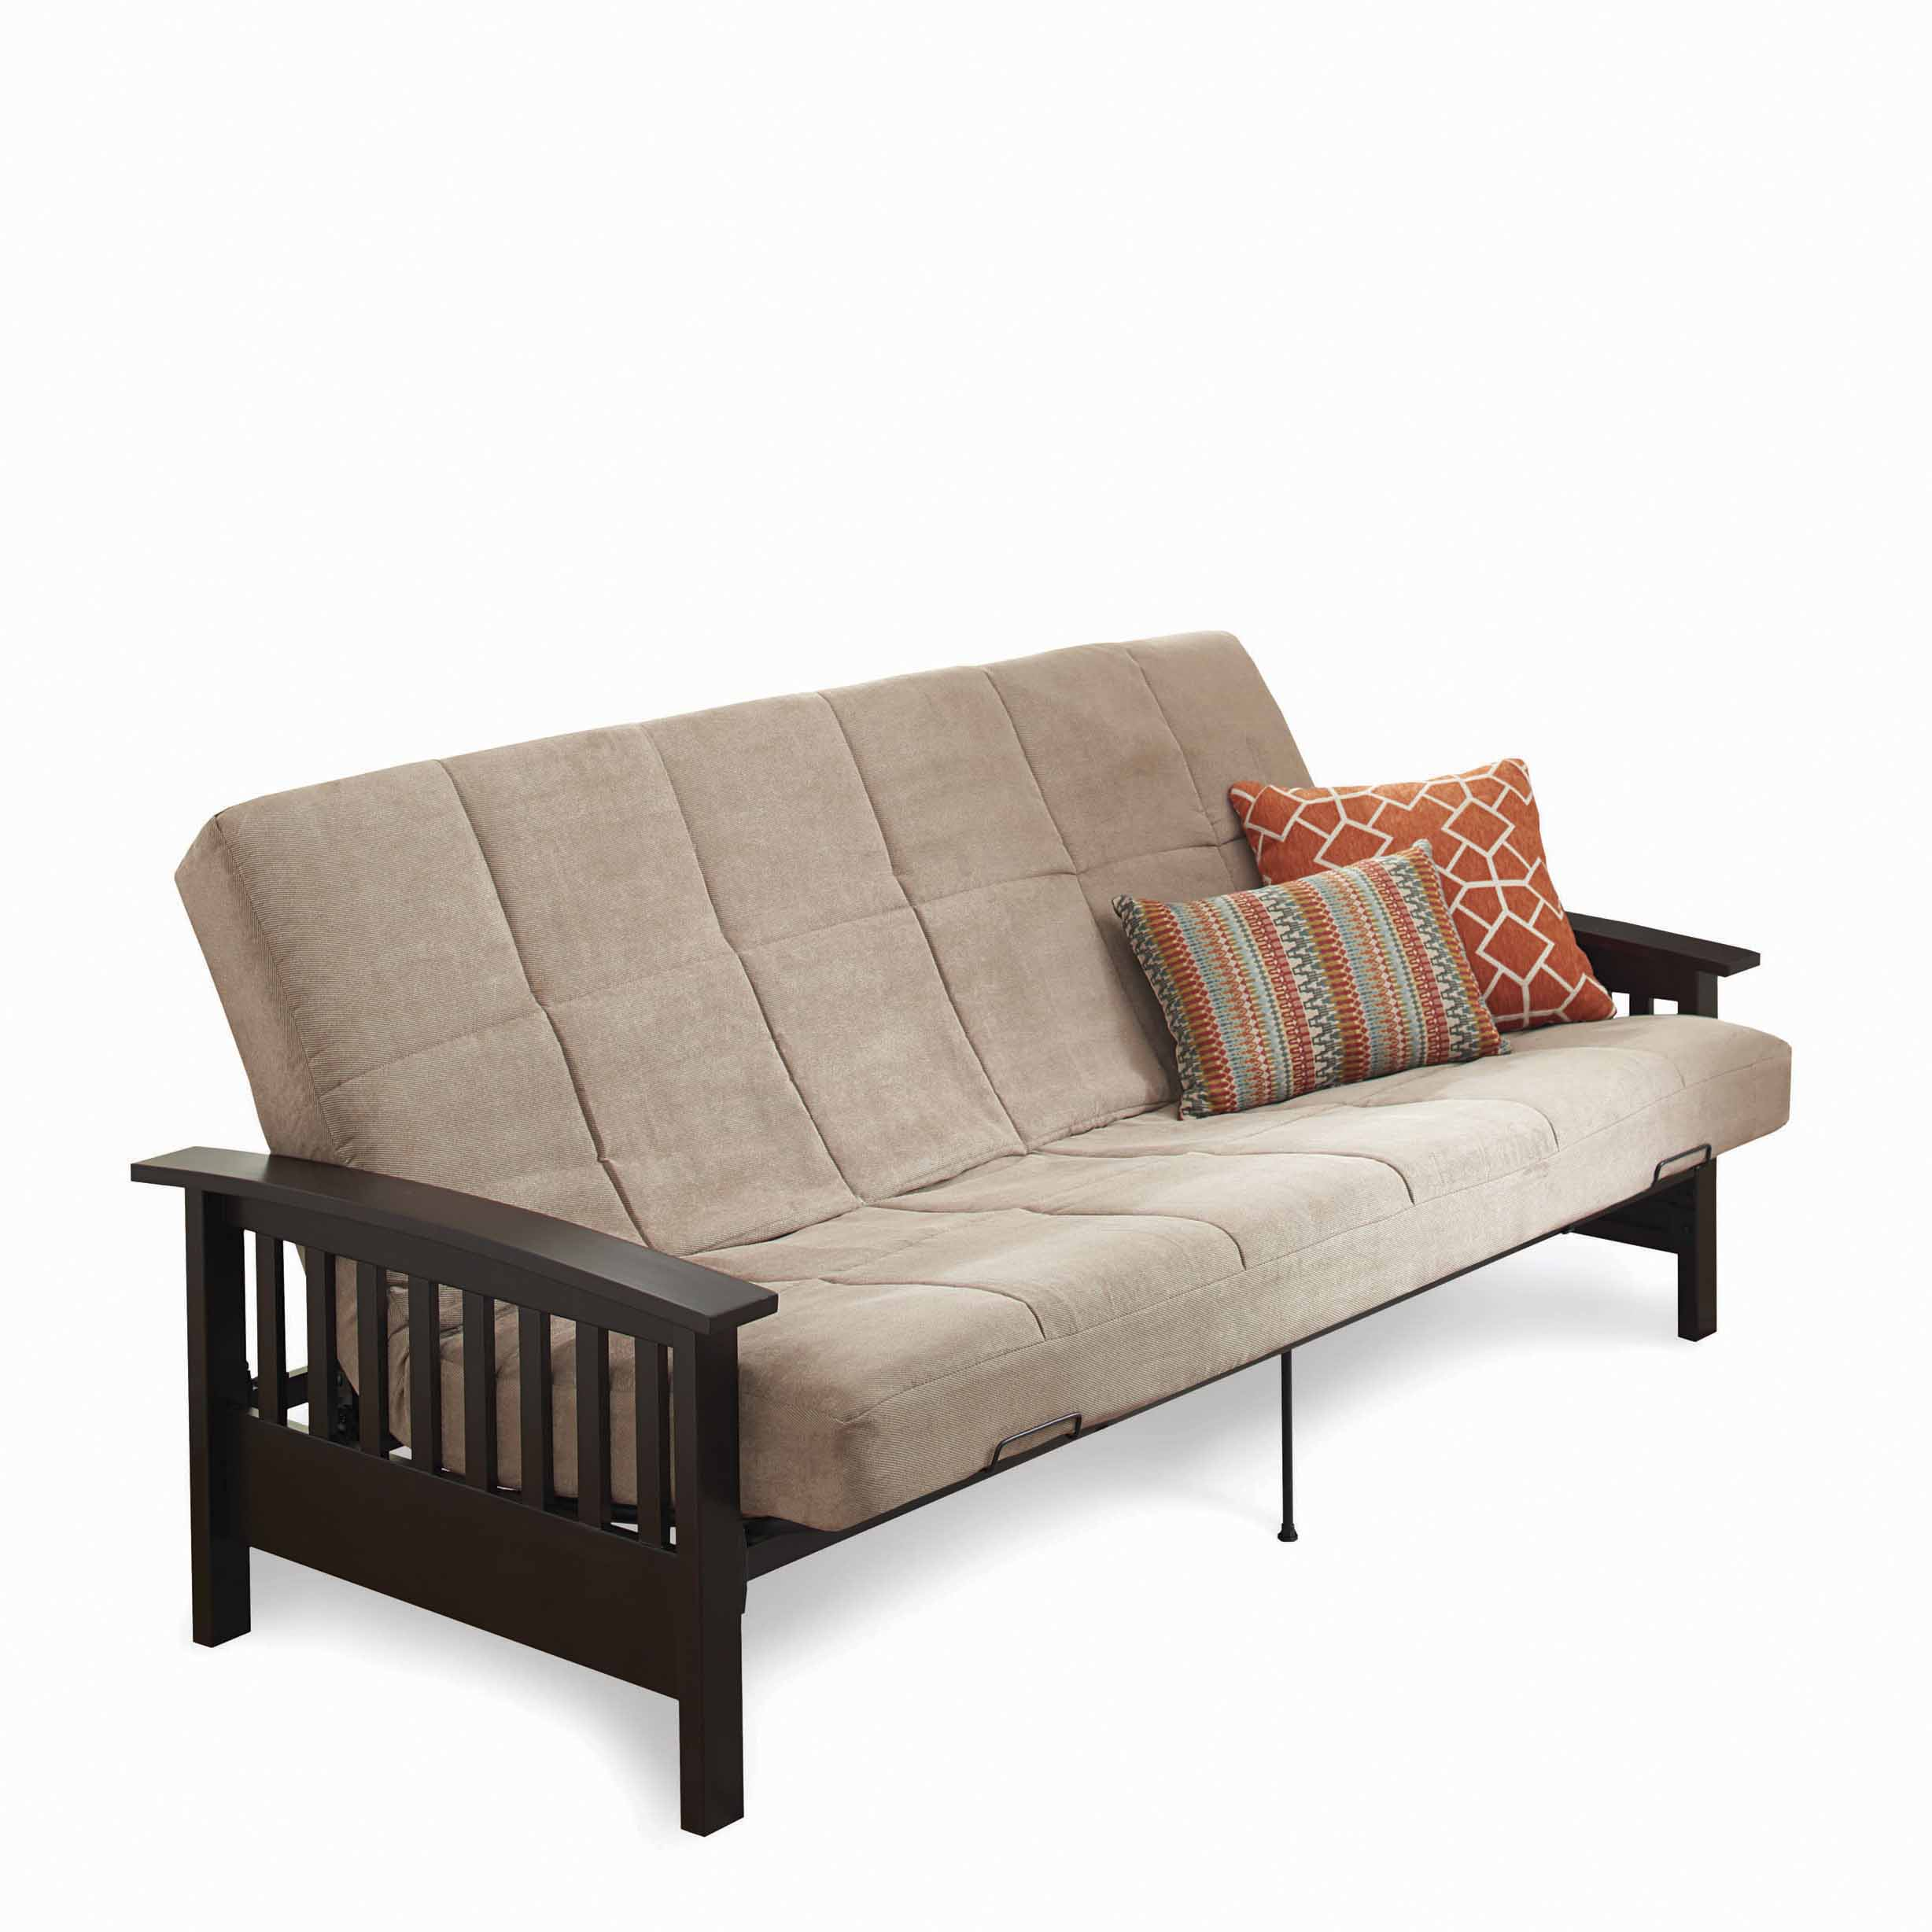 better homes and gardens mission wood arm futon better homes and gardens mission wood arm futon   best futons  rh   bestcanistervacuumreview